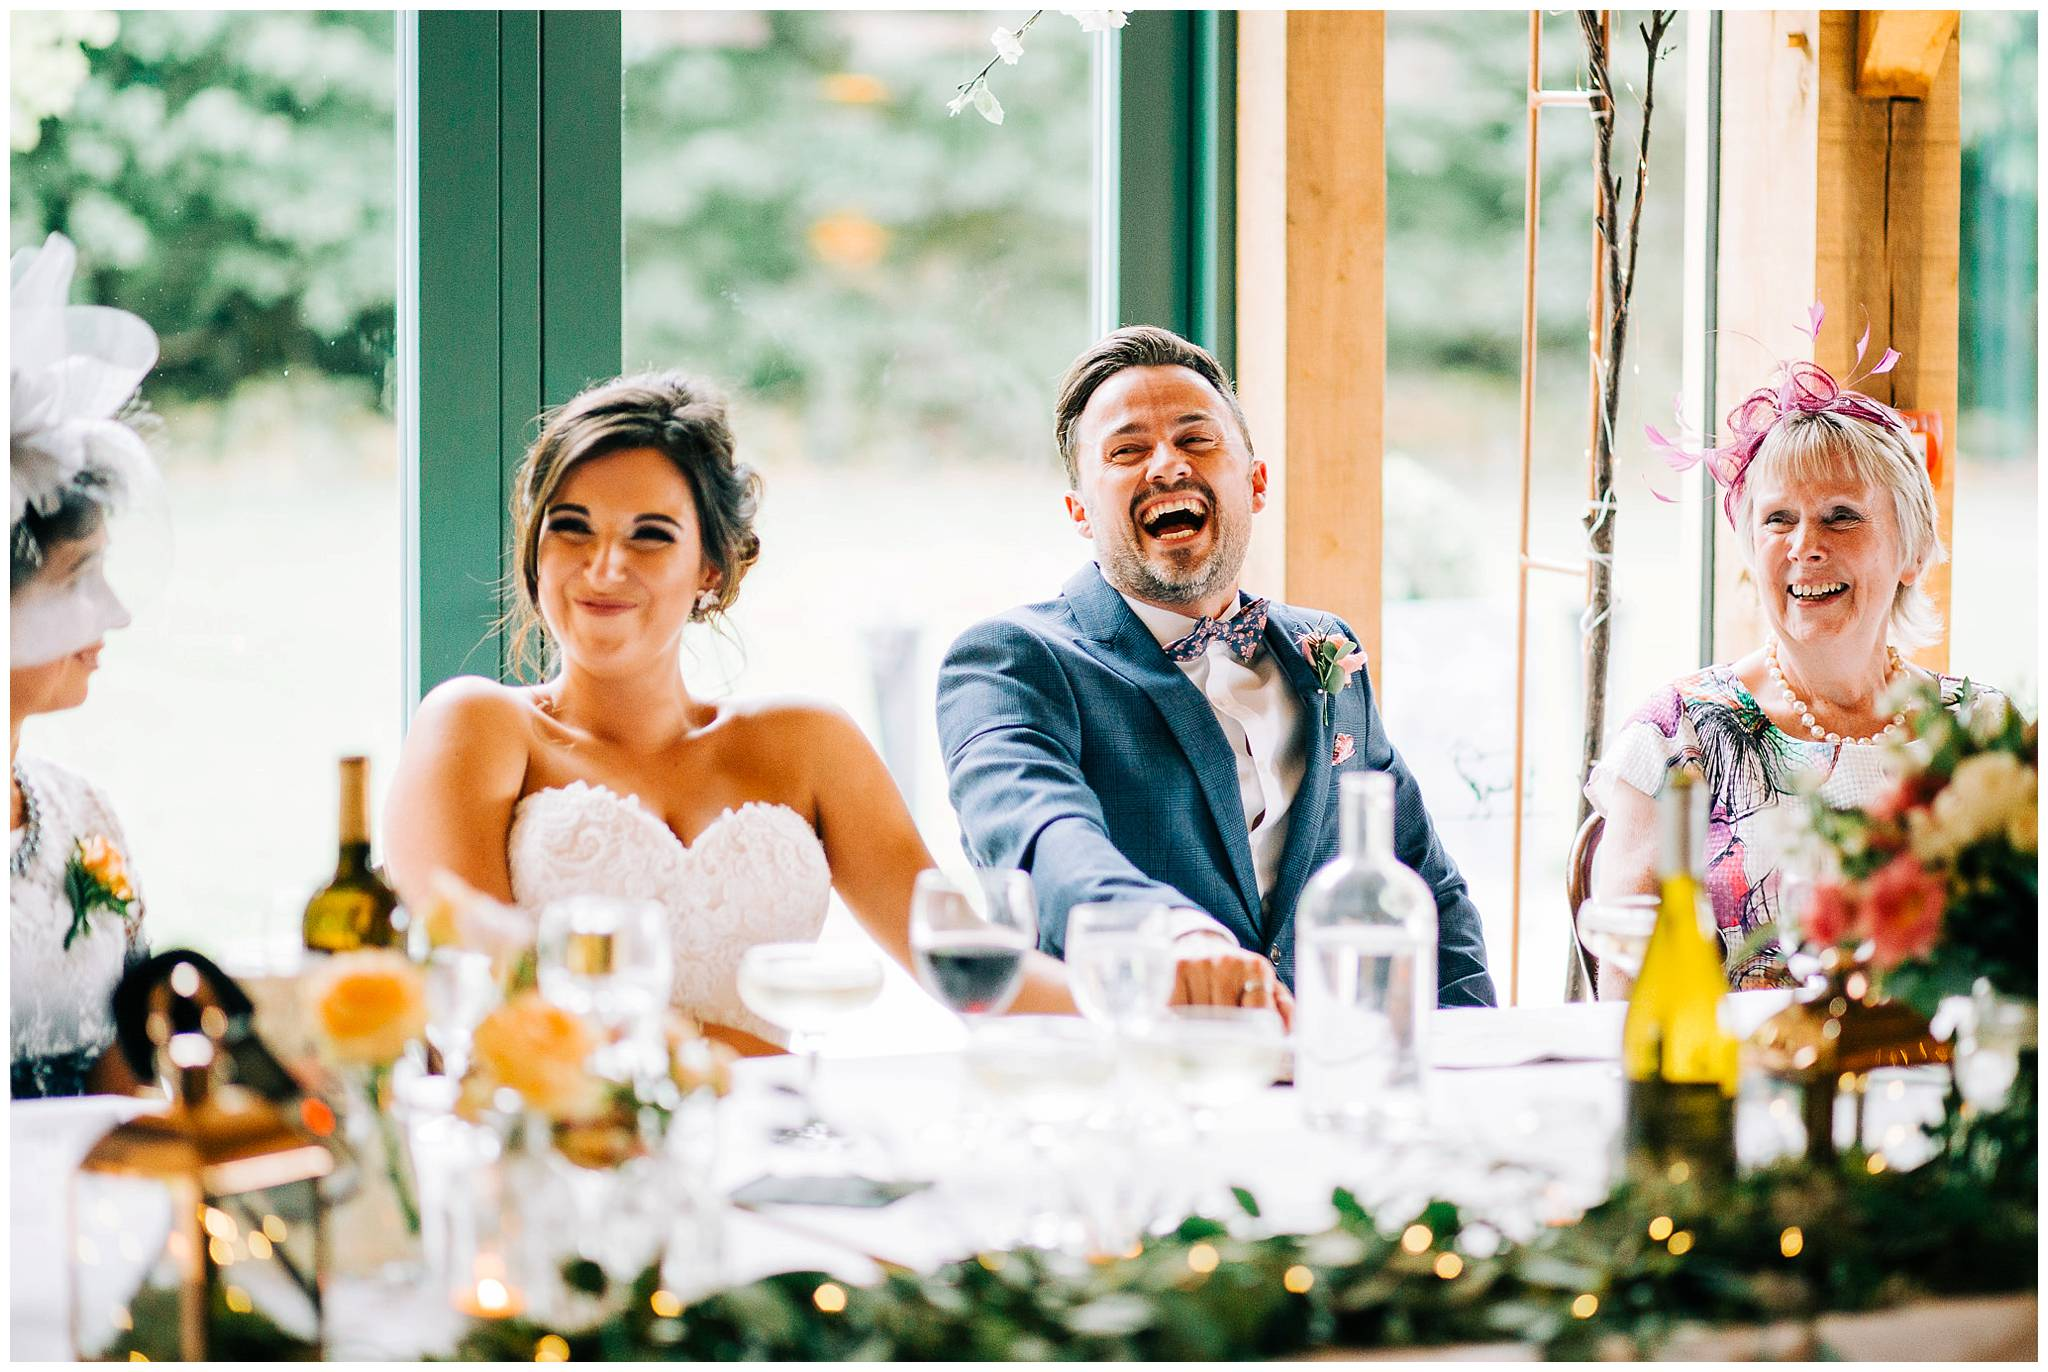 Chic Summer Wedding at Hazel Gap Barn - Nottinghamshire Photographer60.jpg